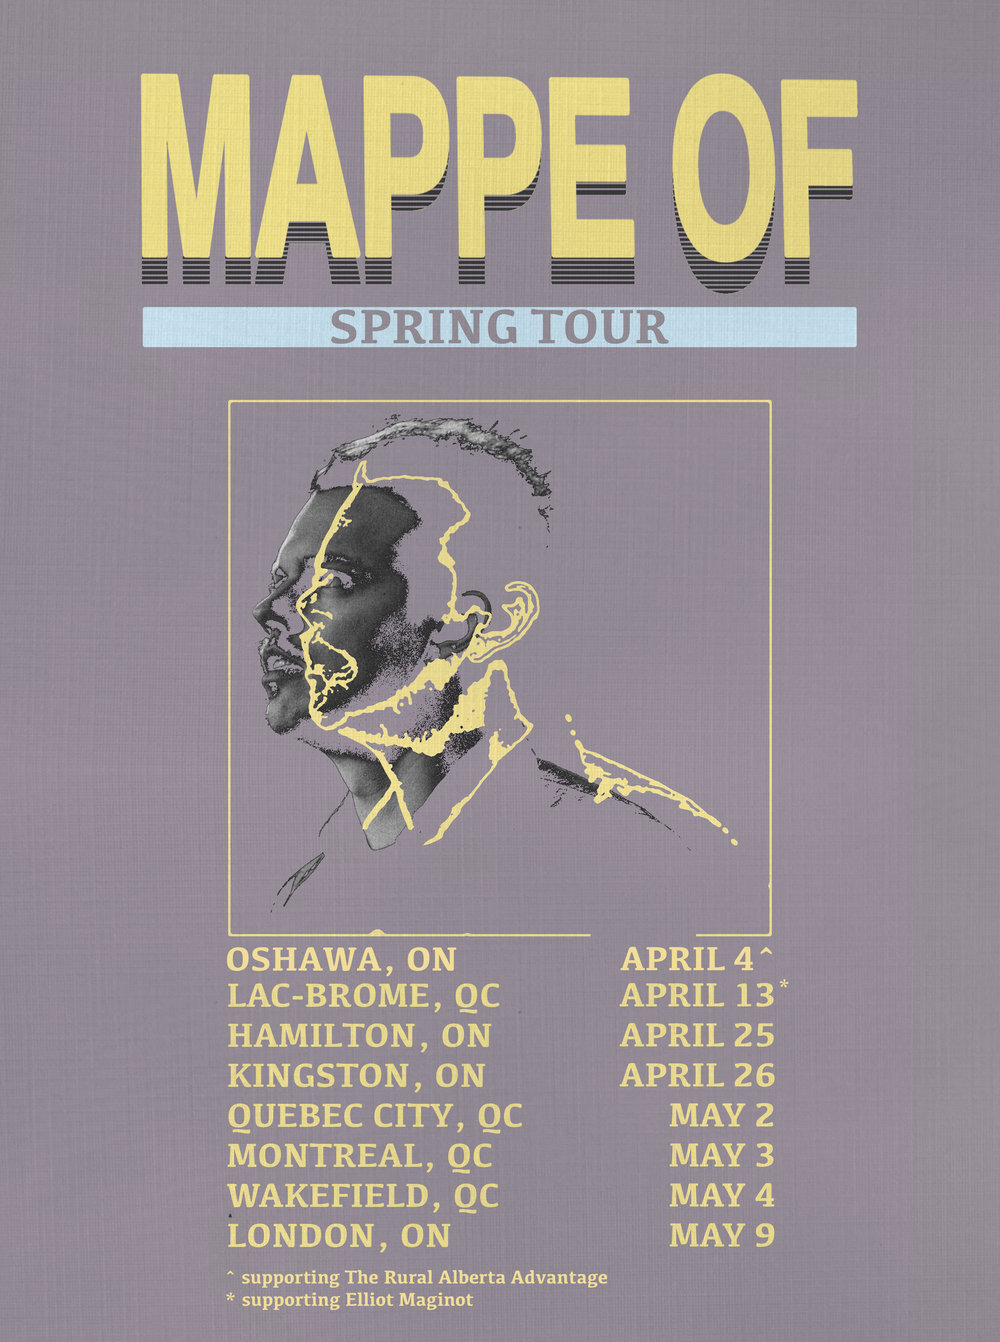 Mappe Of Spring Tour.jpeg